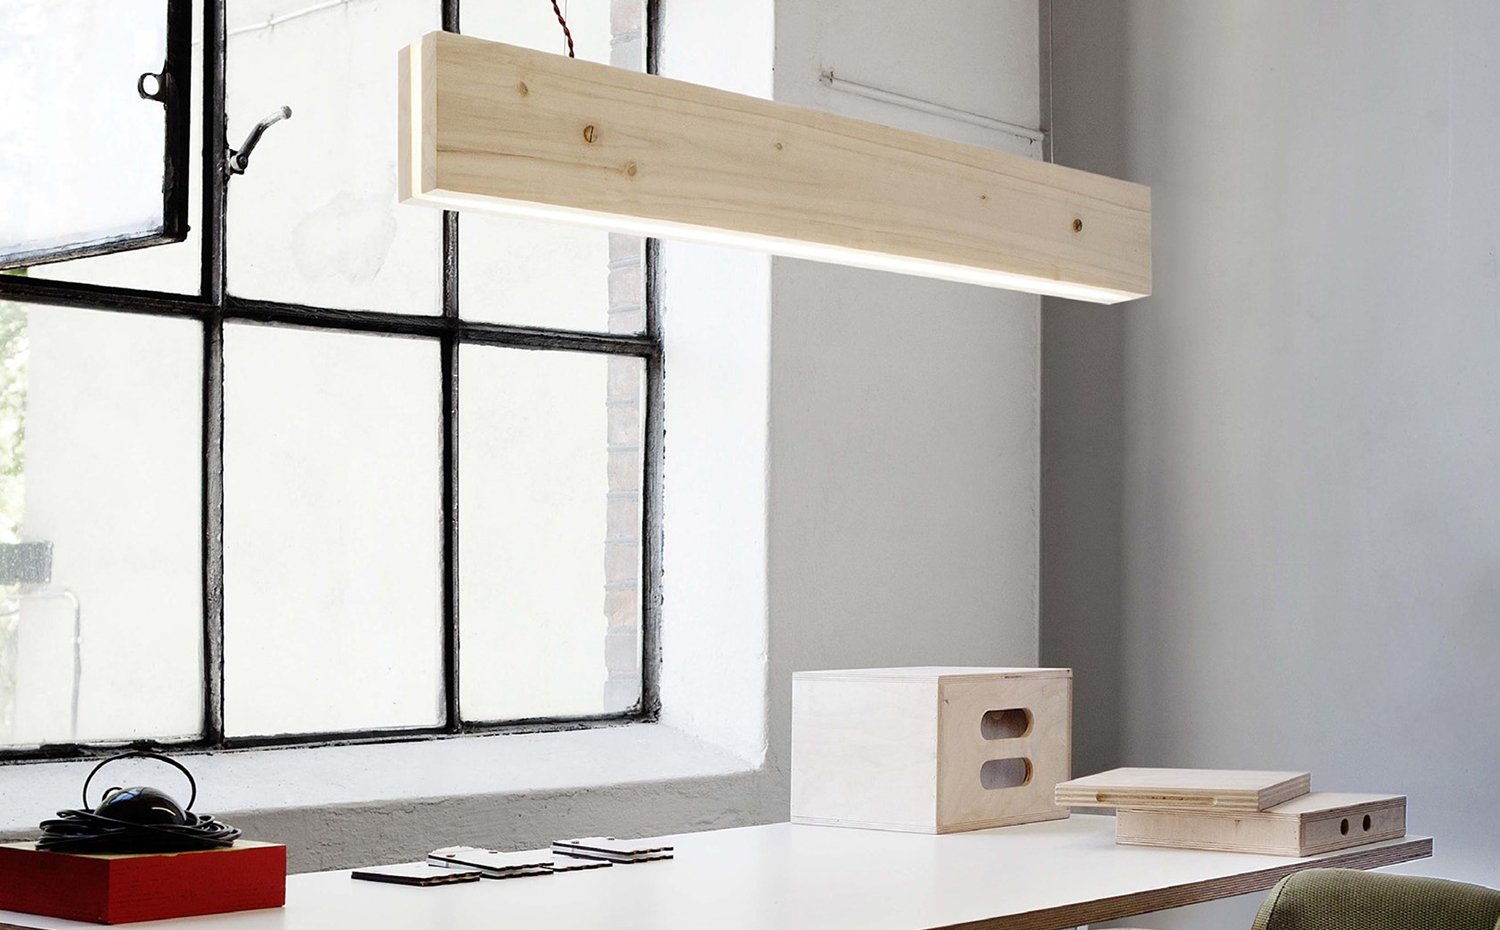 luces como el modelo plank de f o frberg u ml para northern lighting